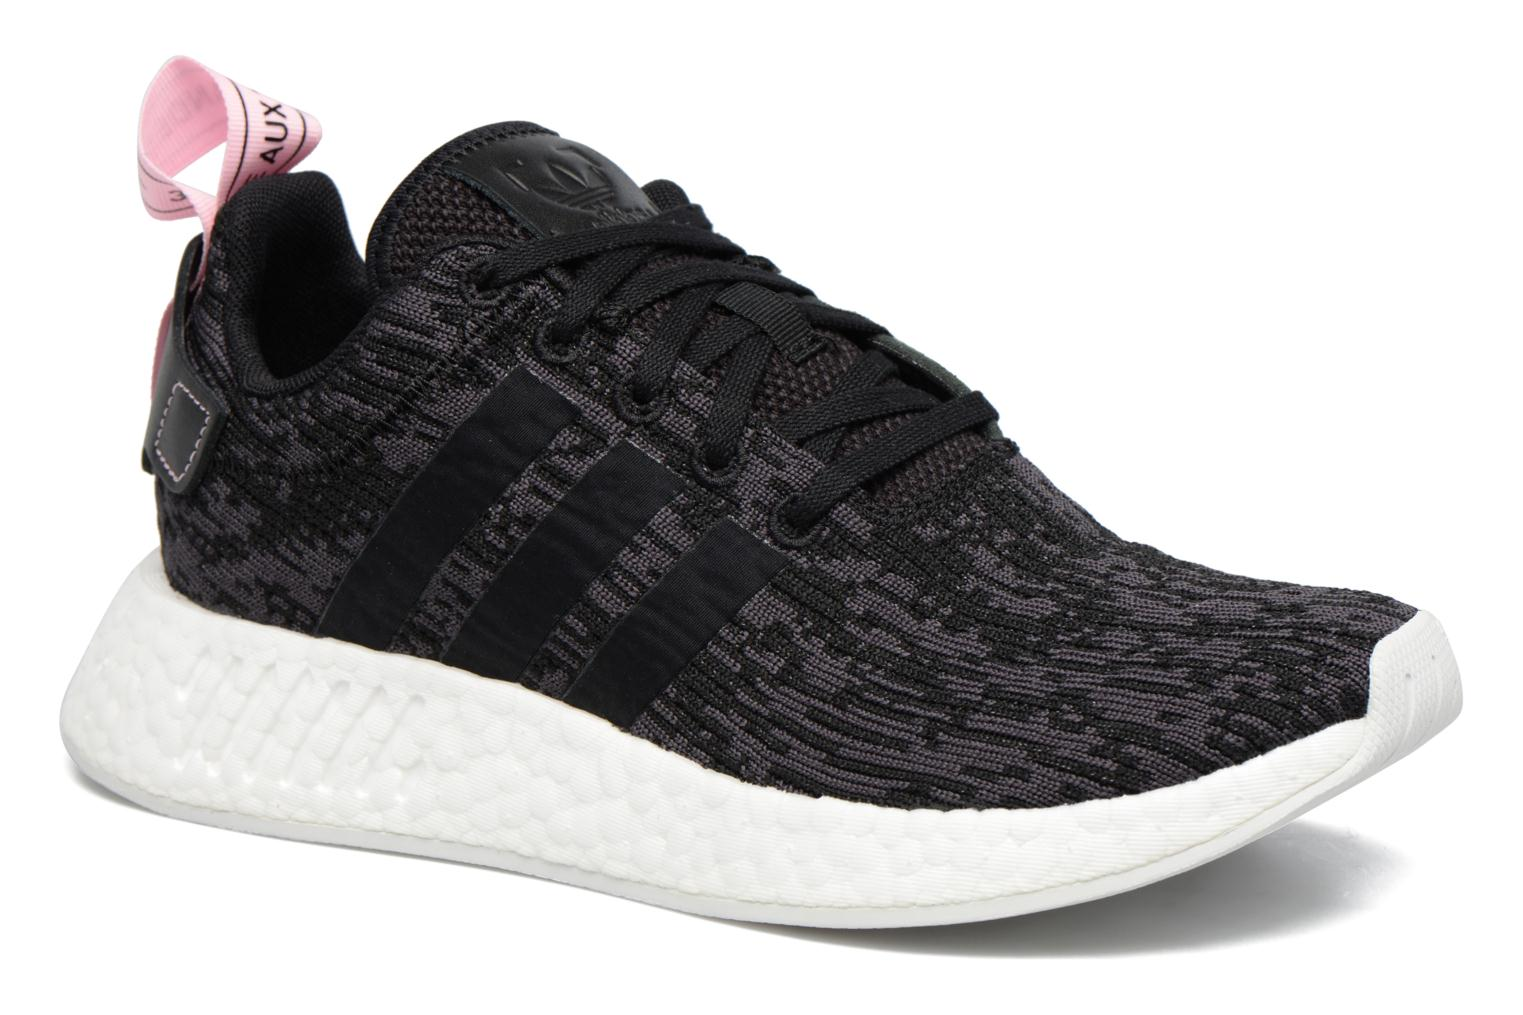 Nmd_R2 W by Adidas Originals